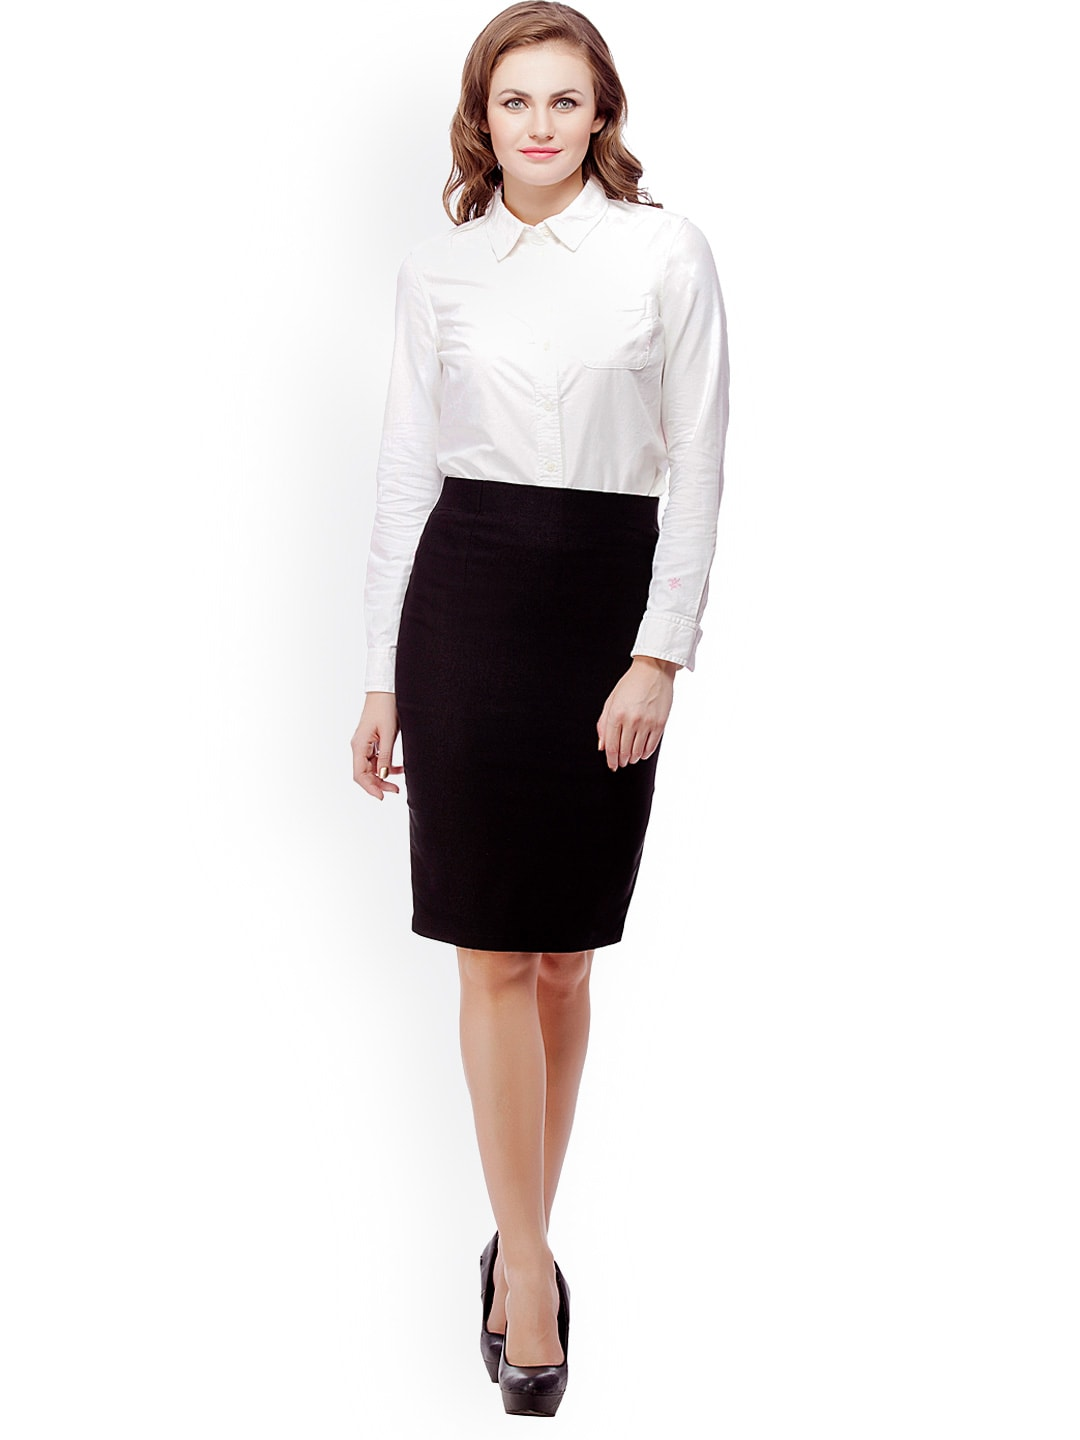 Find great deals on eBay for girls black pencil skirt. Shop with confidence.